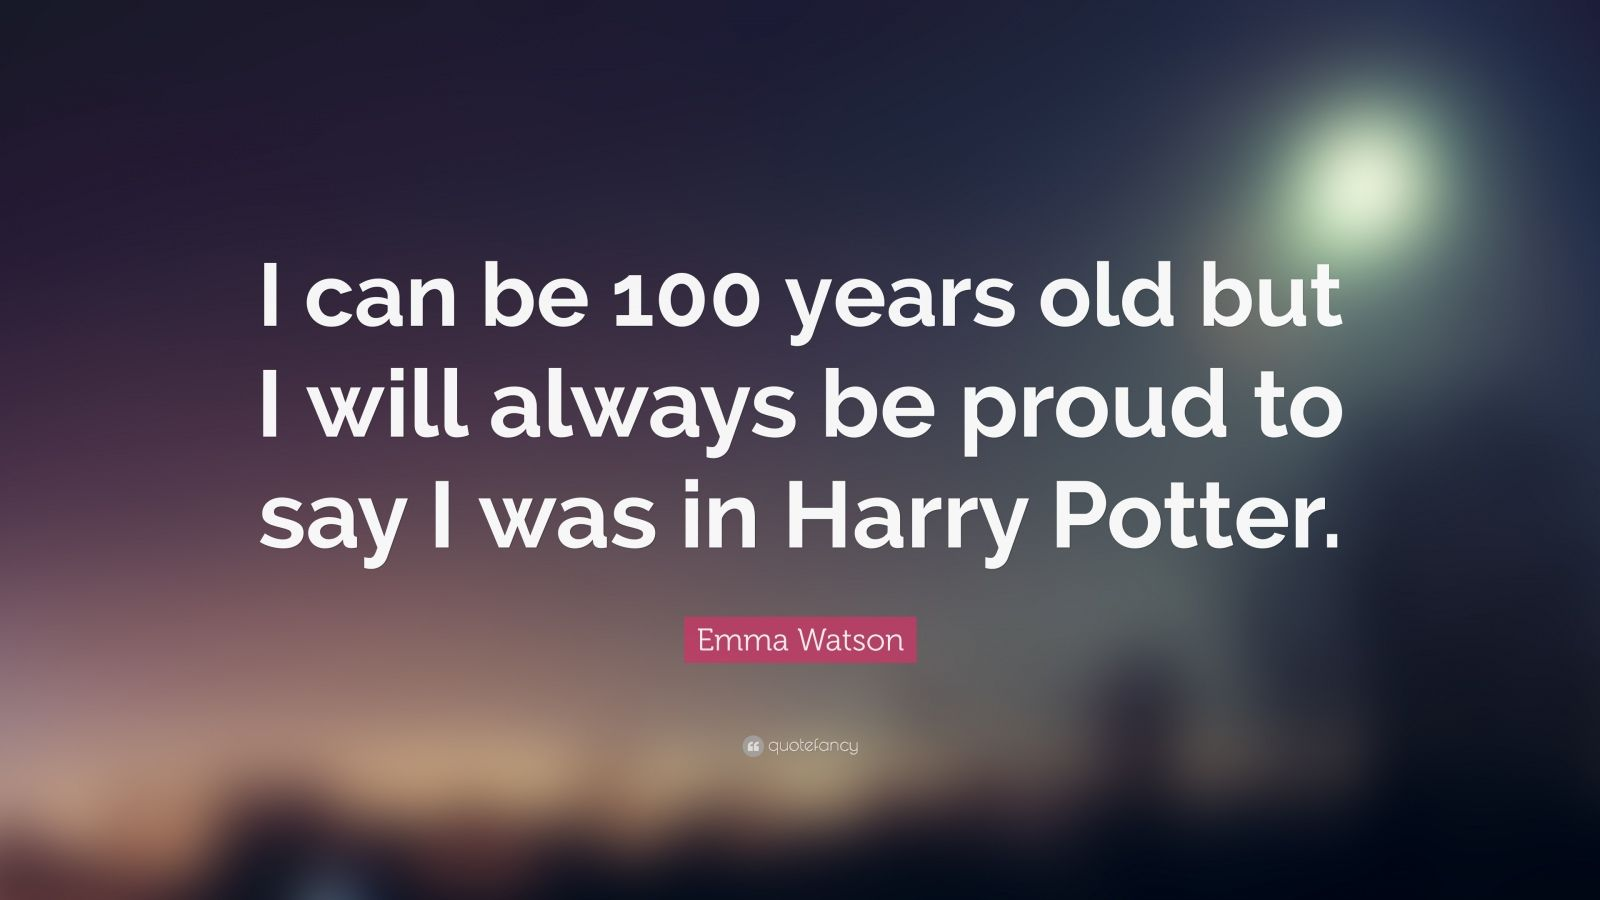 """Emma Watson Quote: """"I can be 100 years old but I will always be proud to say I was in Harry Potter."""""""